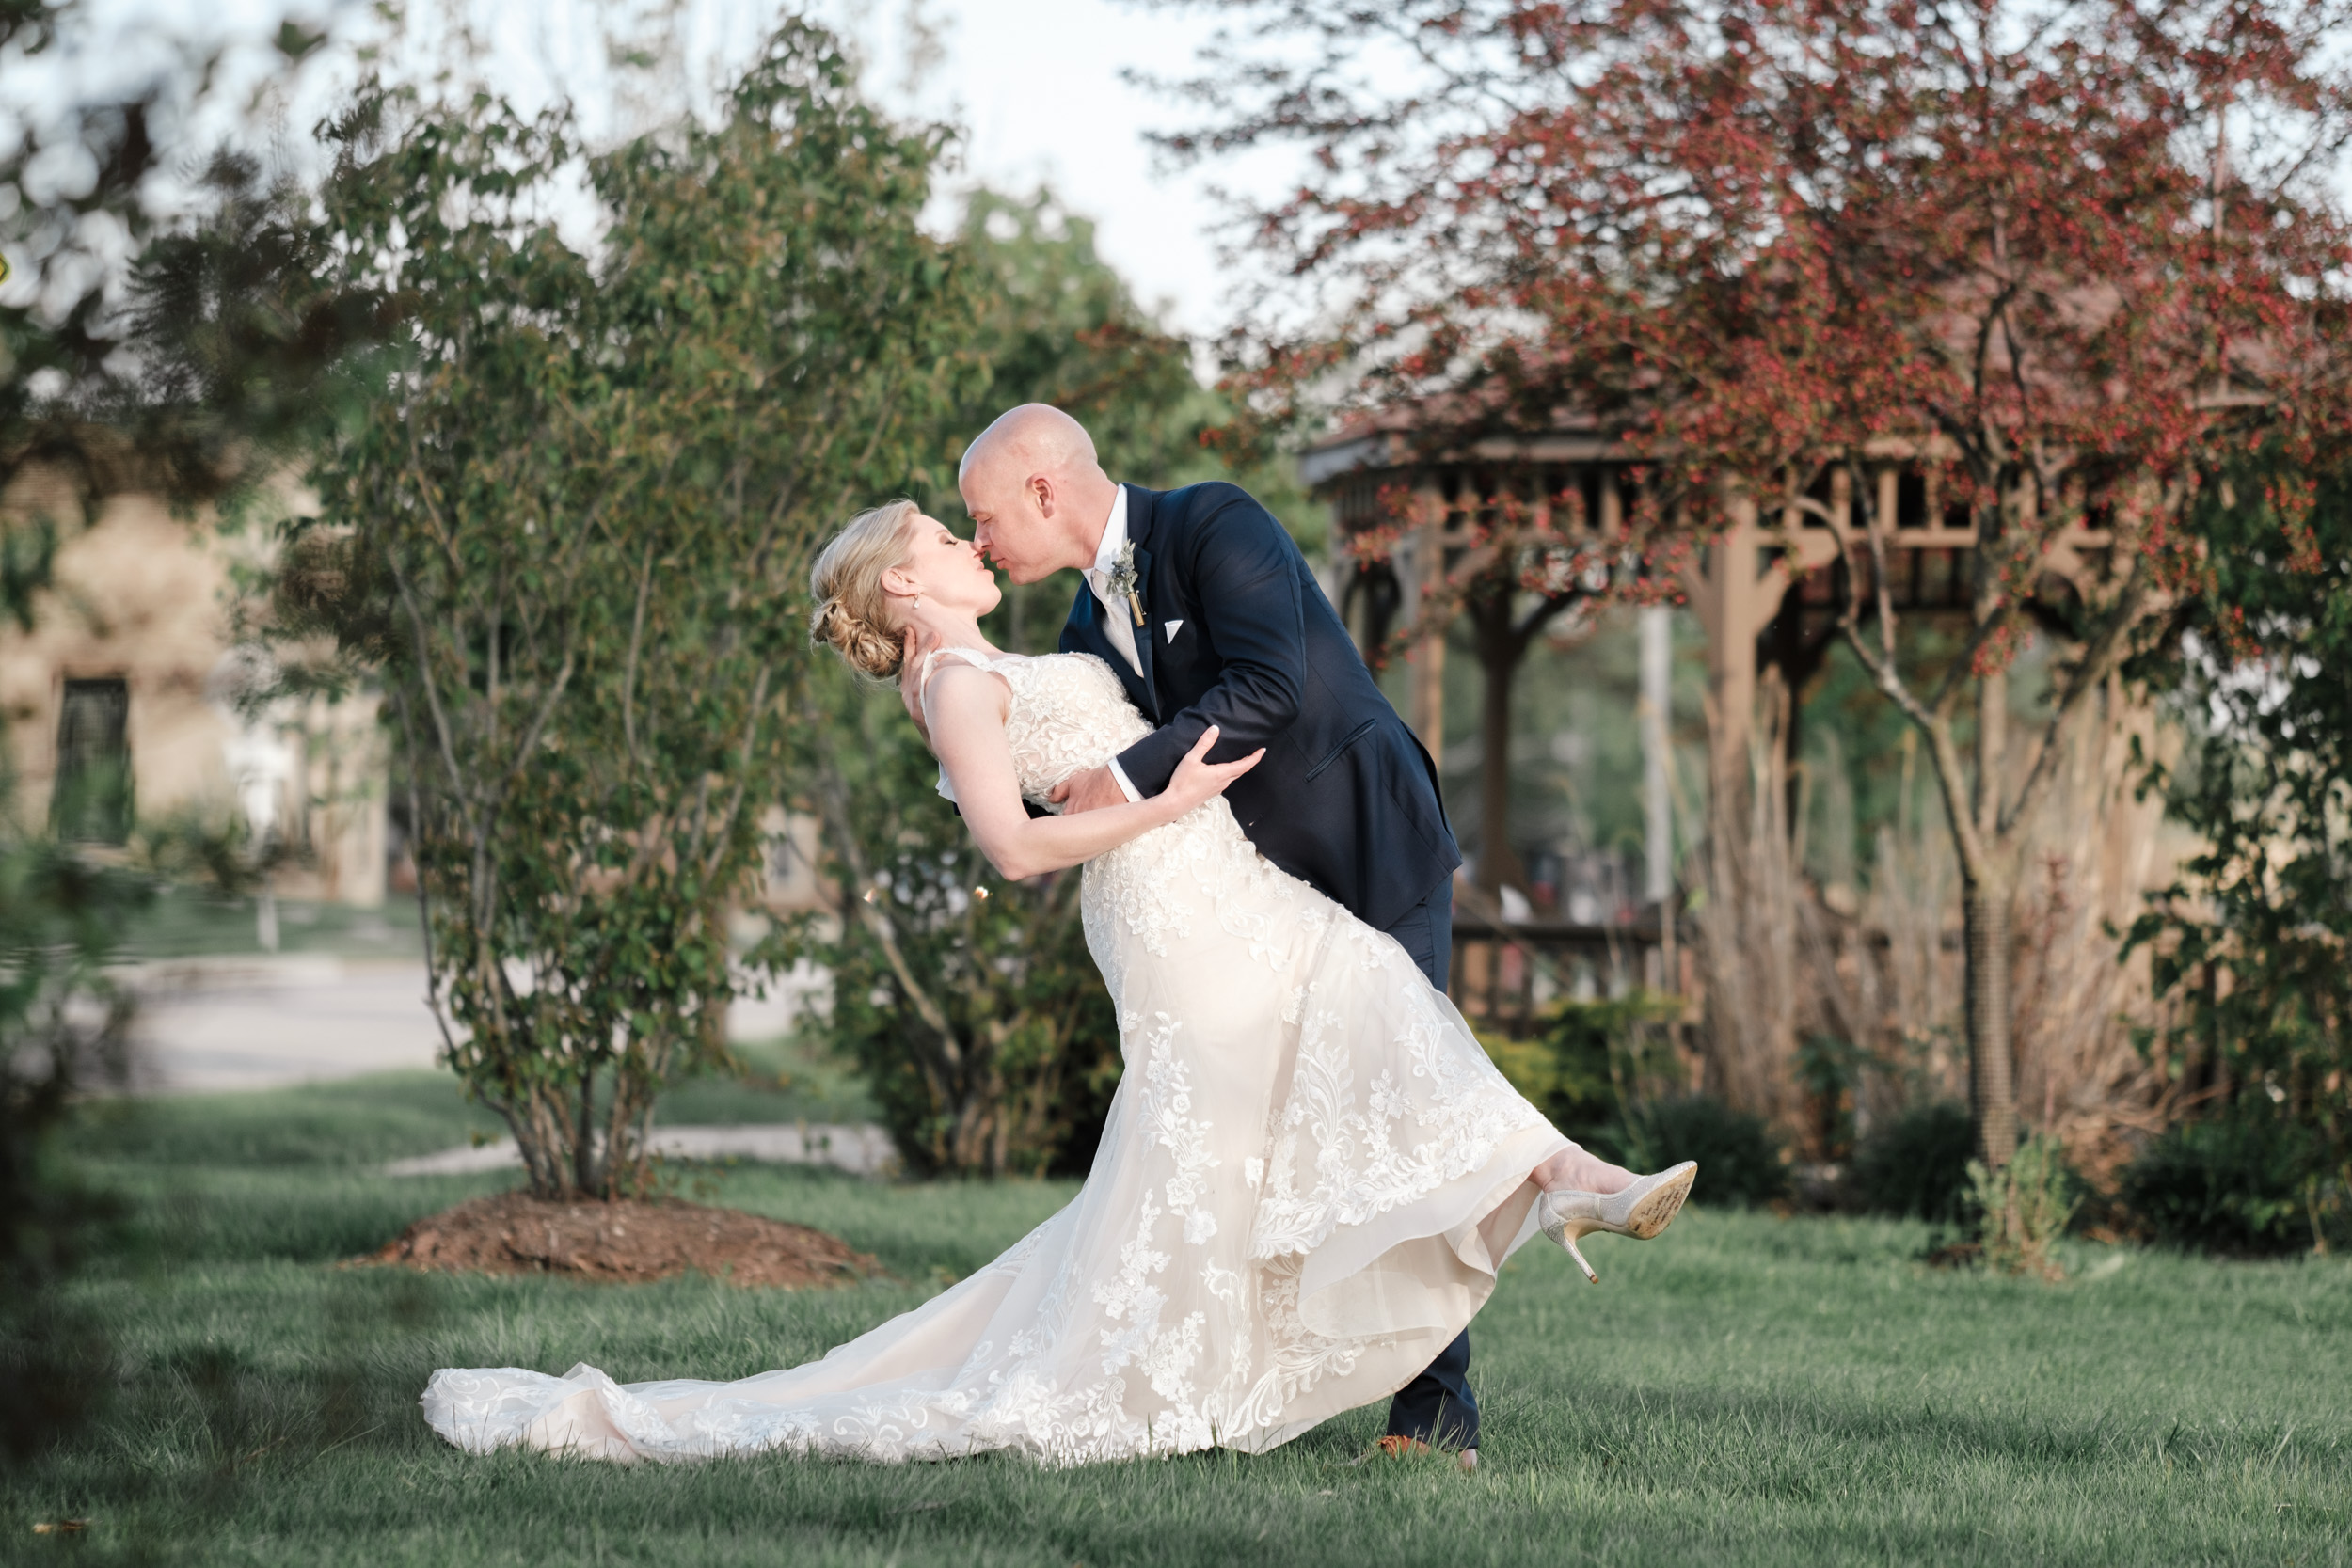 wedding day dip of love with laughs and kiss at the brix